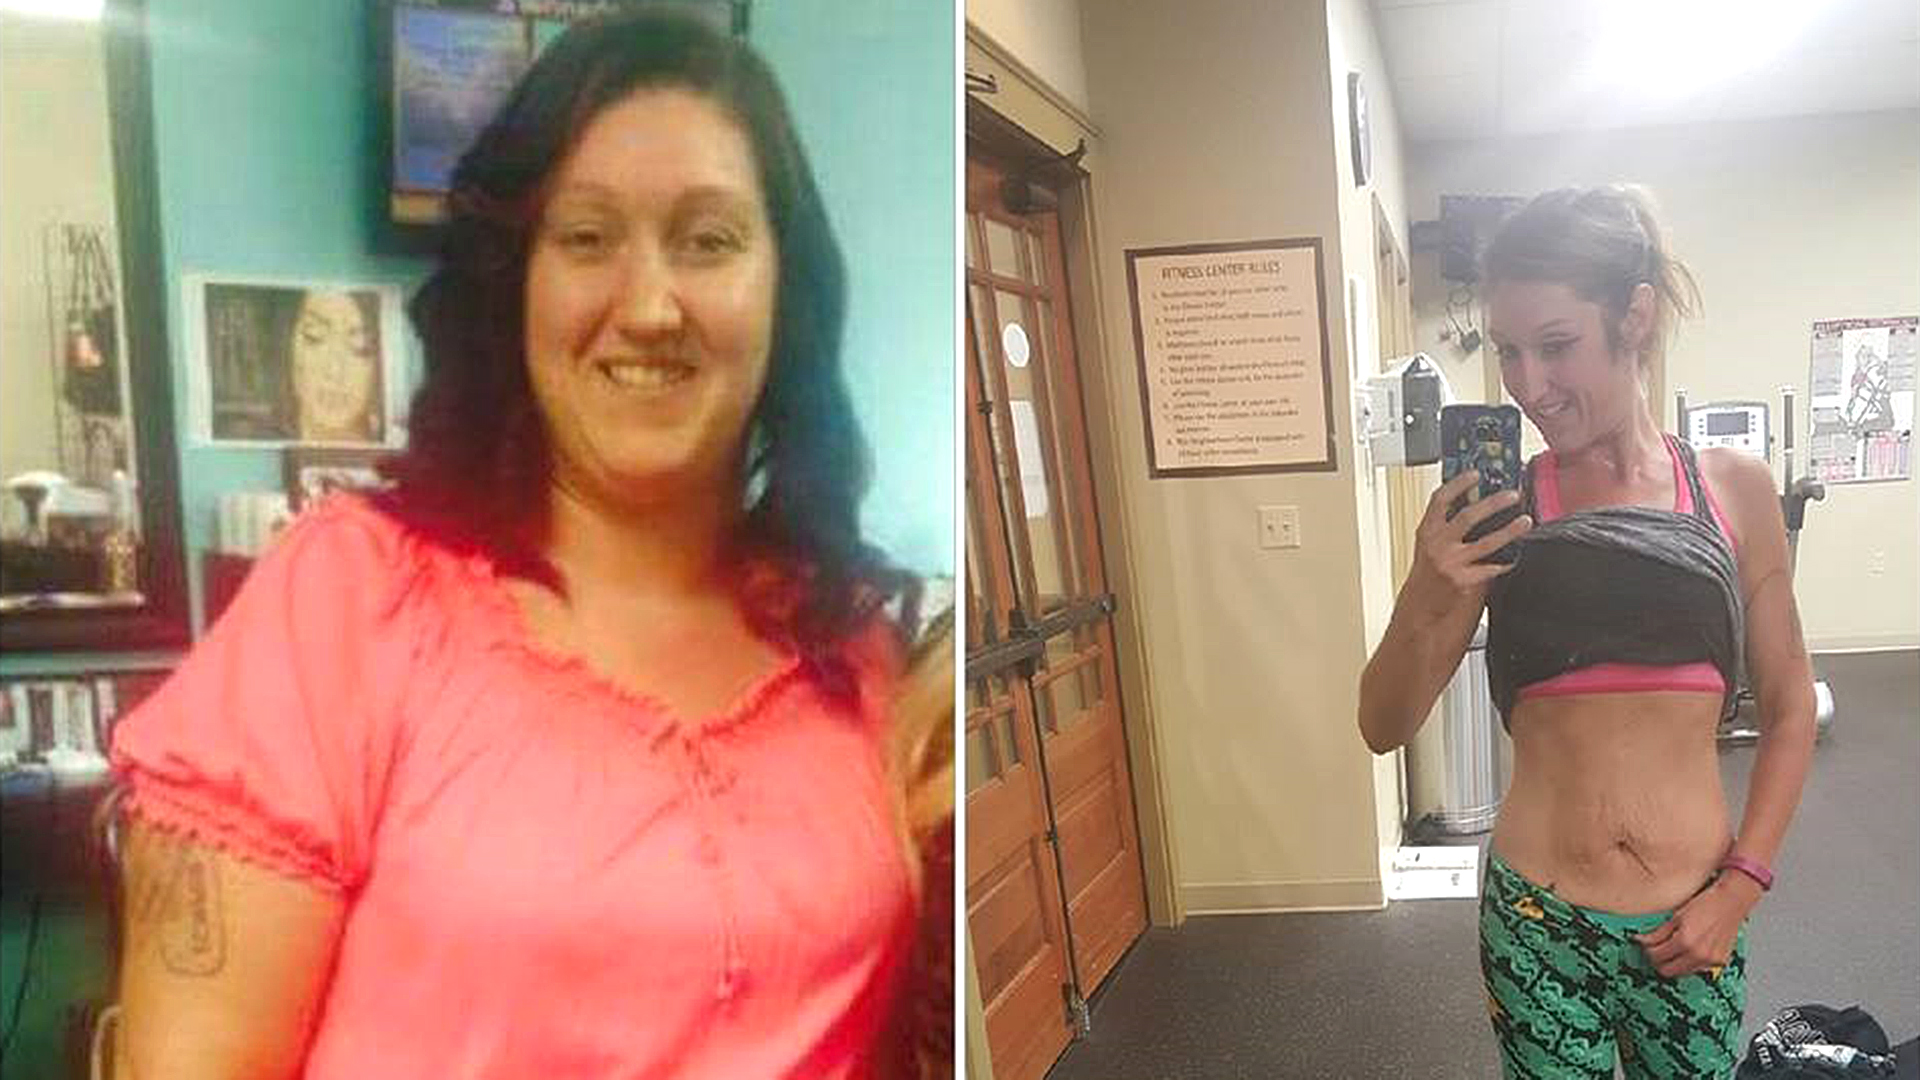 Divorce prompts overweight woman to lose 125 pounds